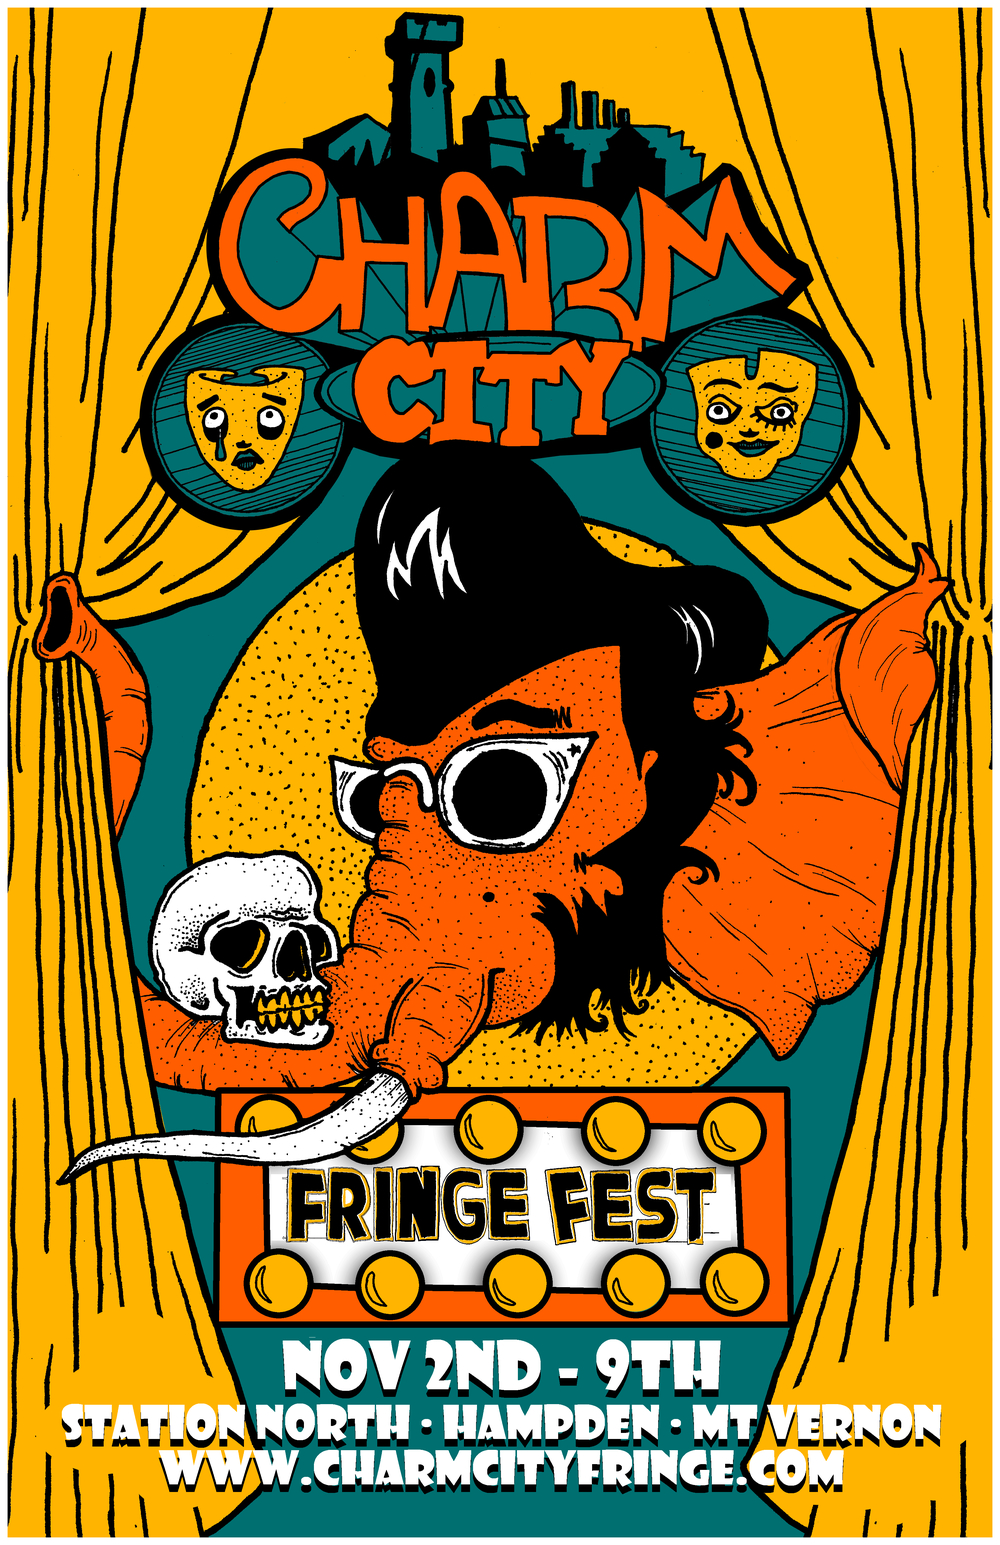 Here it is, the brand-spanking-new 2014 Charm City Fringe Festival poster. This gem was created by artist Navid Azeez.